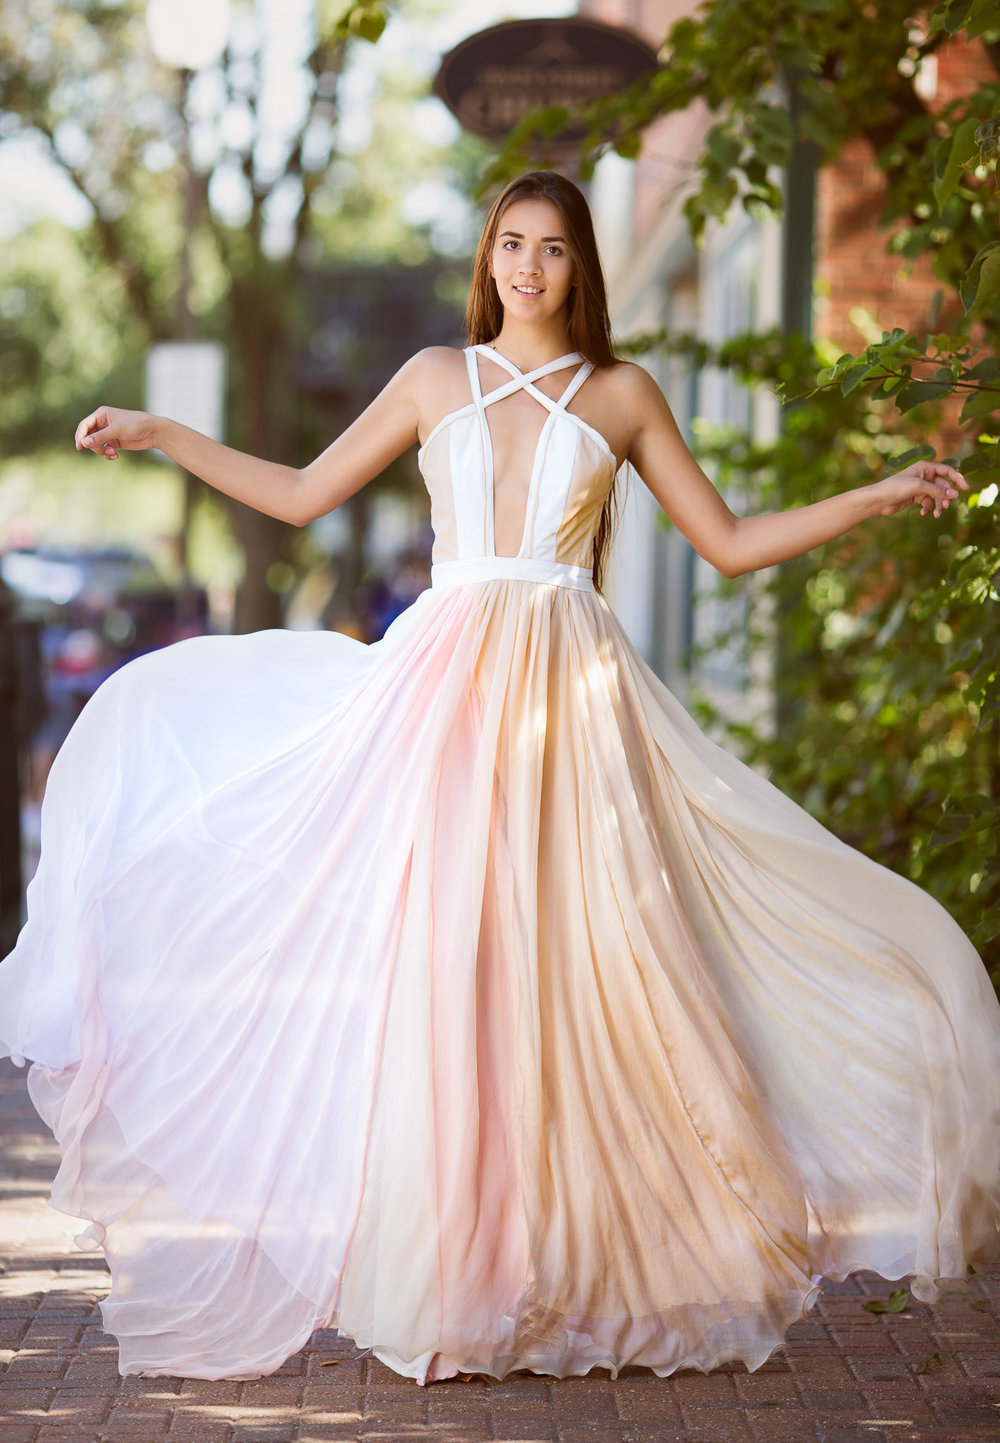 Dresses - Casual, Formal, Prom, Evening & Cocktail — Wiki Wang ...